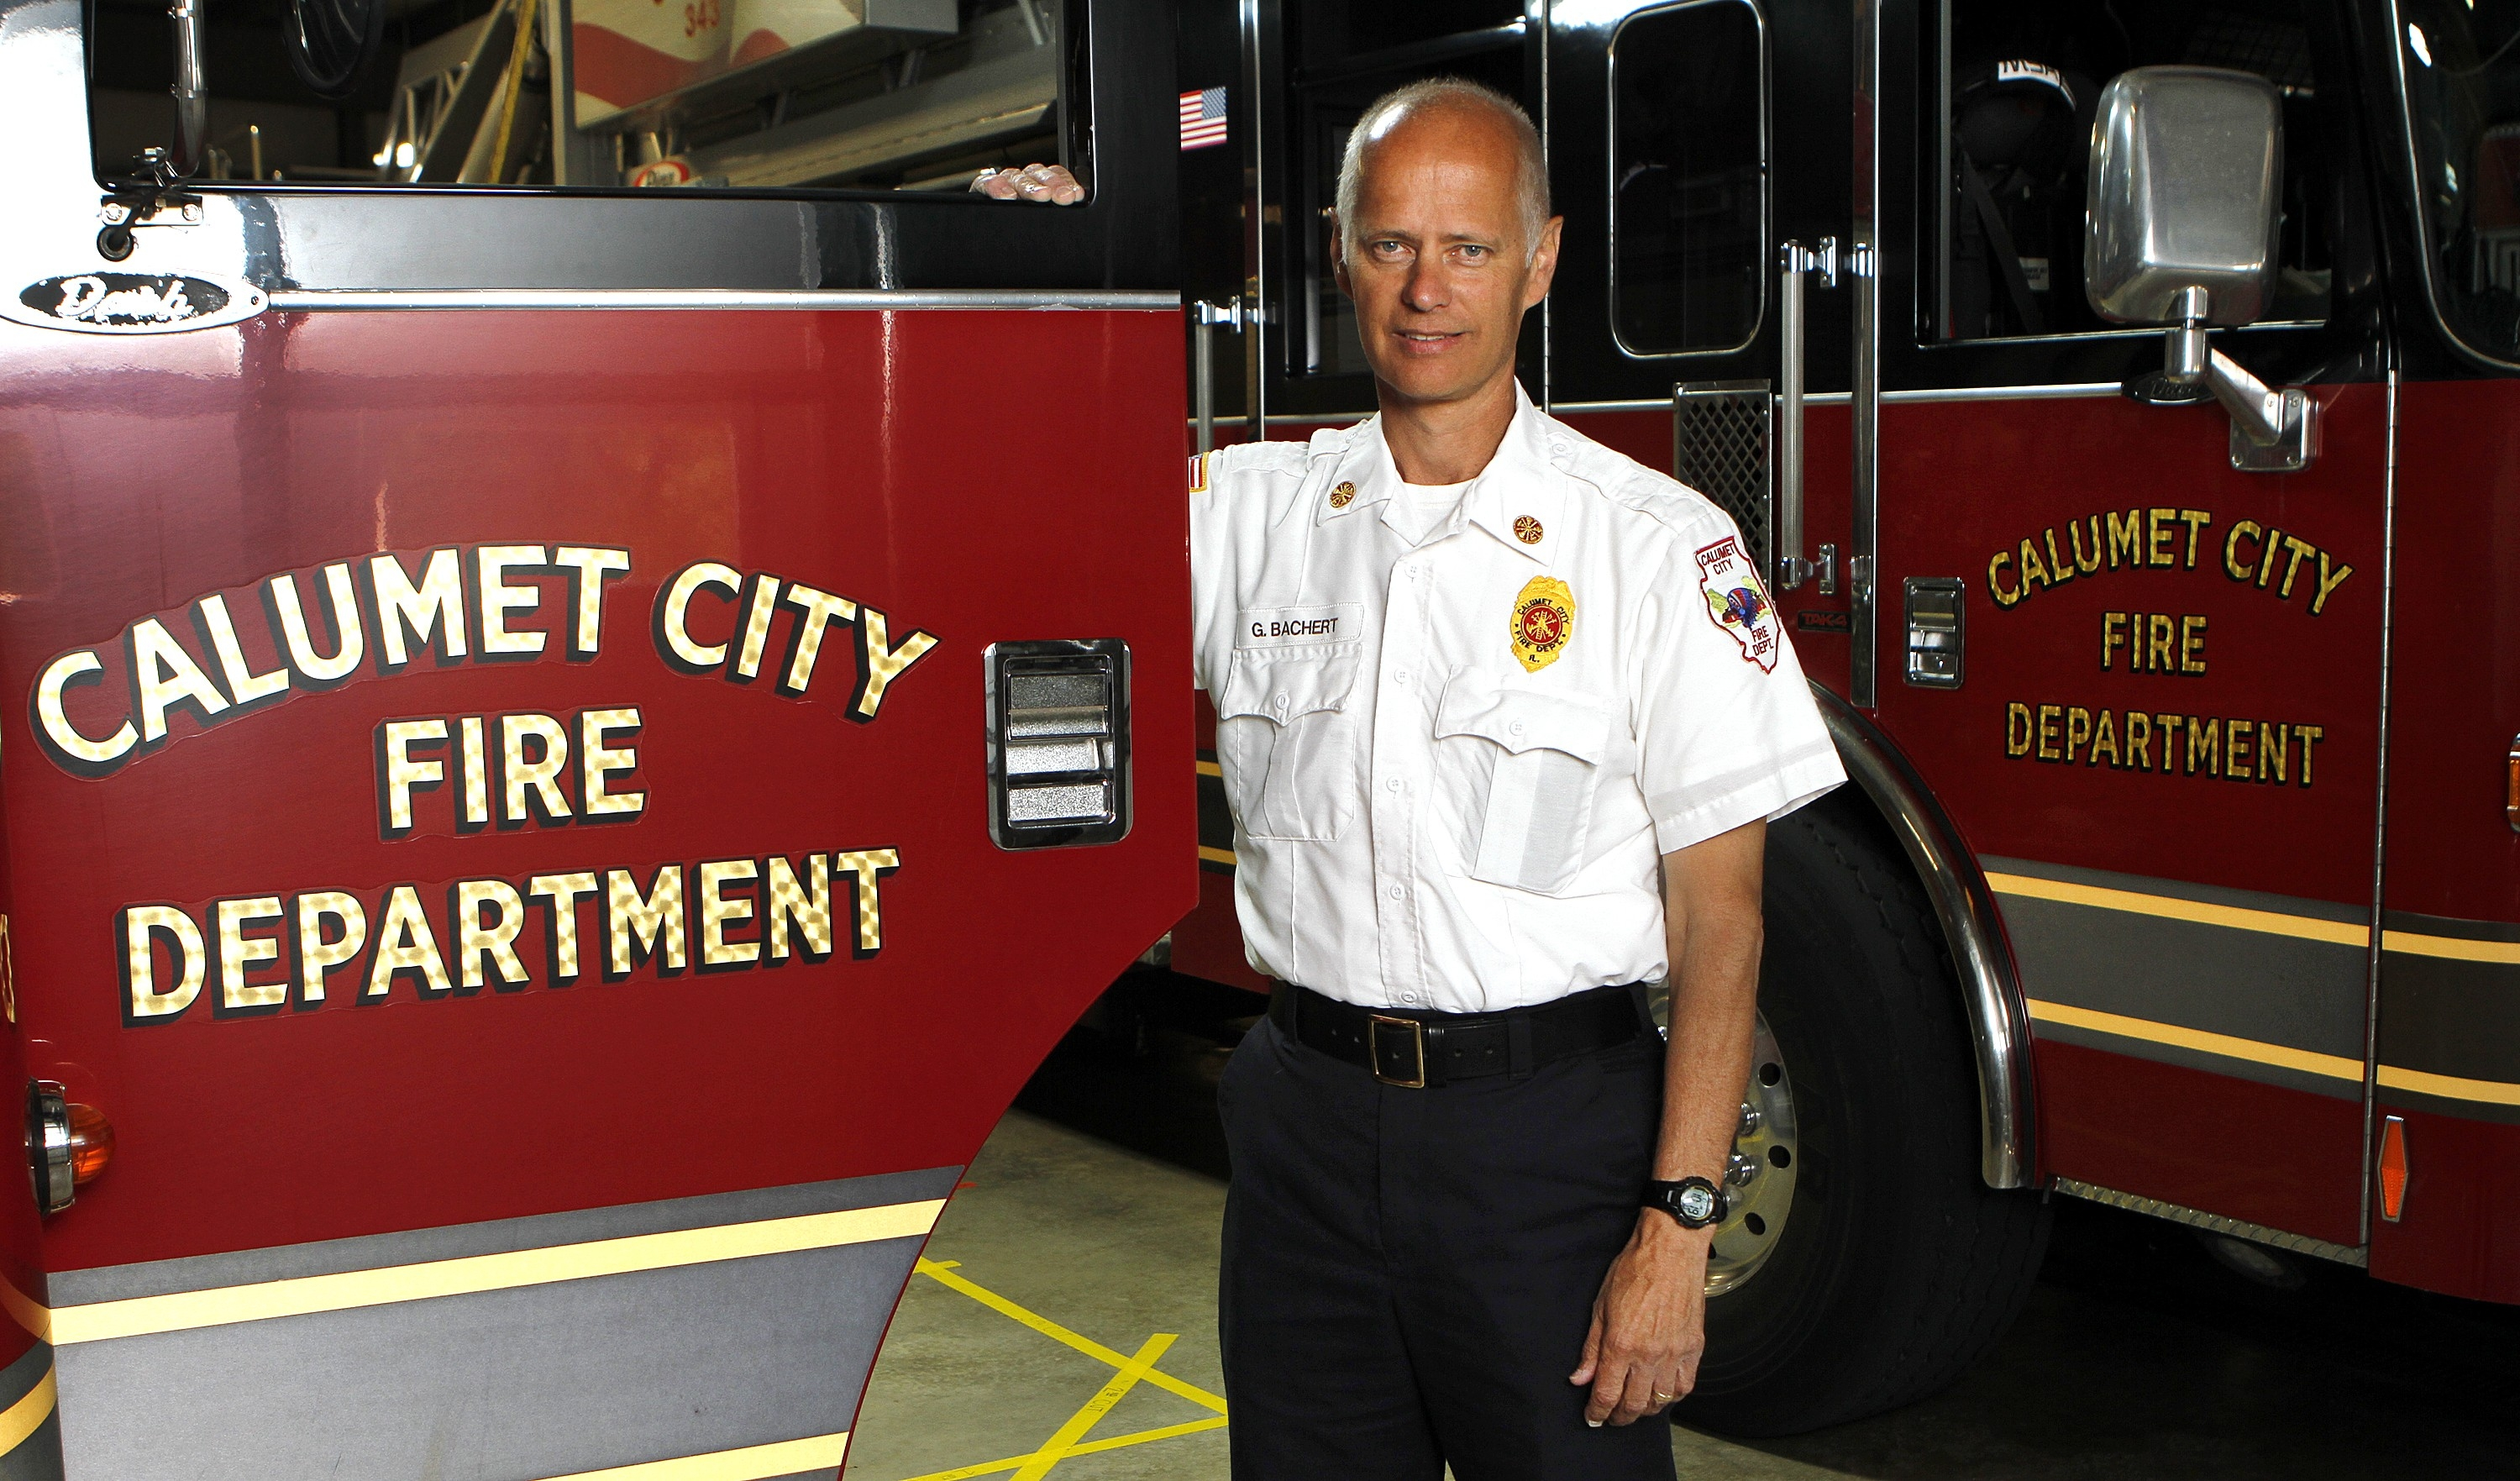 Fire Department | Calumet City  Il Fd Shift Schedule